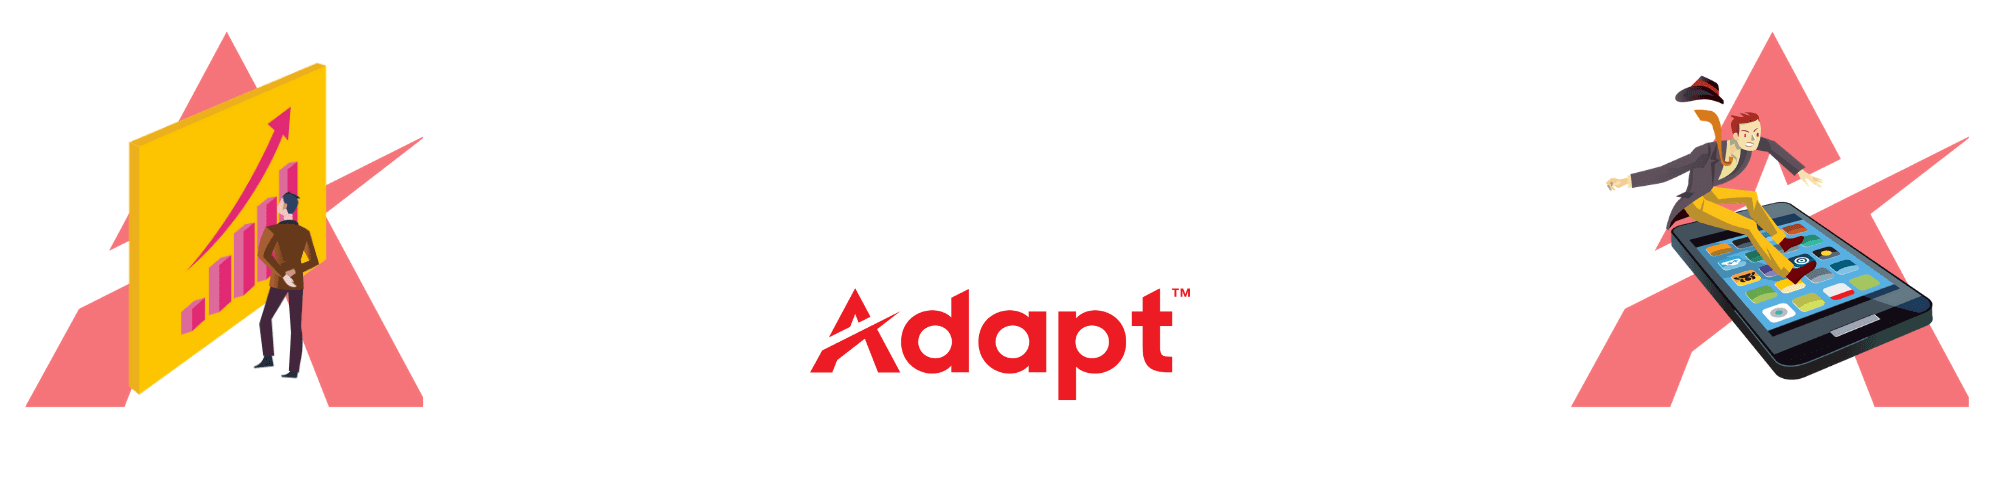 Best Adapt Tips for Recruiters!